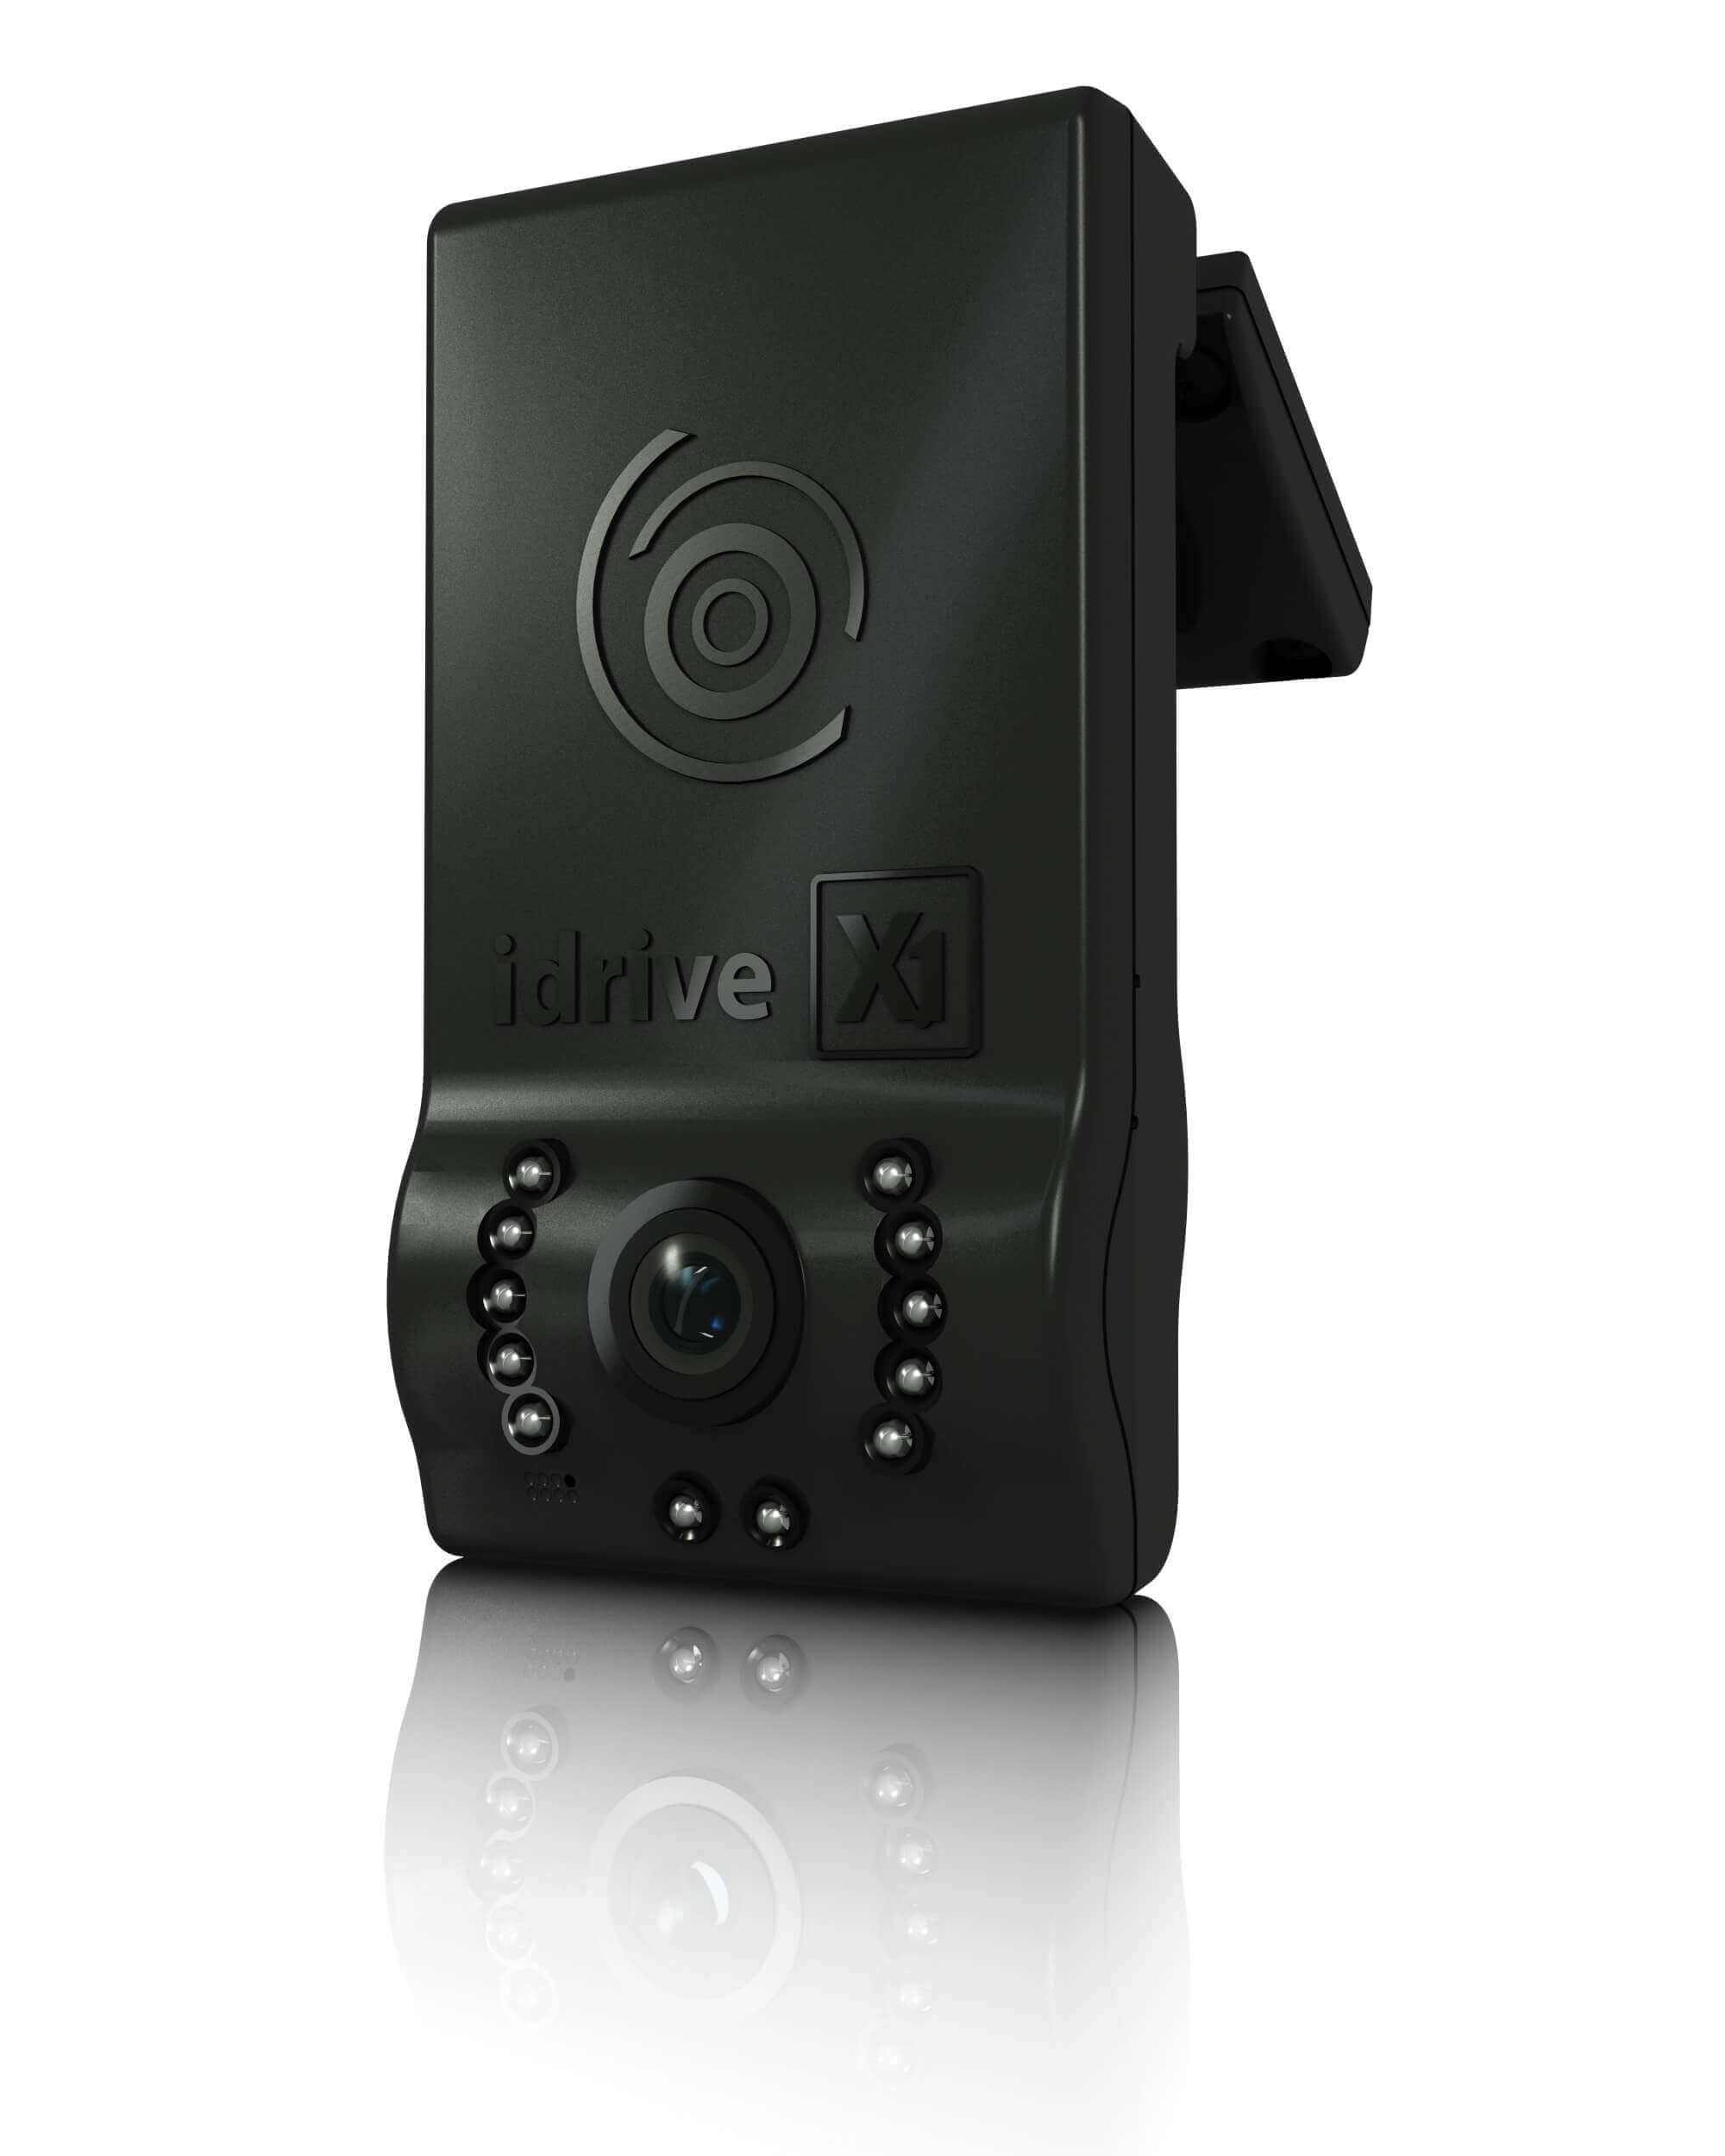 The First Idrive Video Event Recorder for Fleets